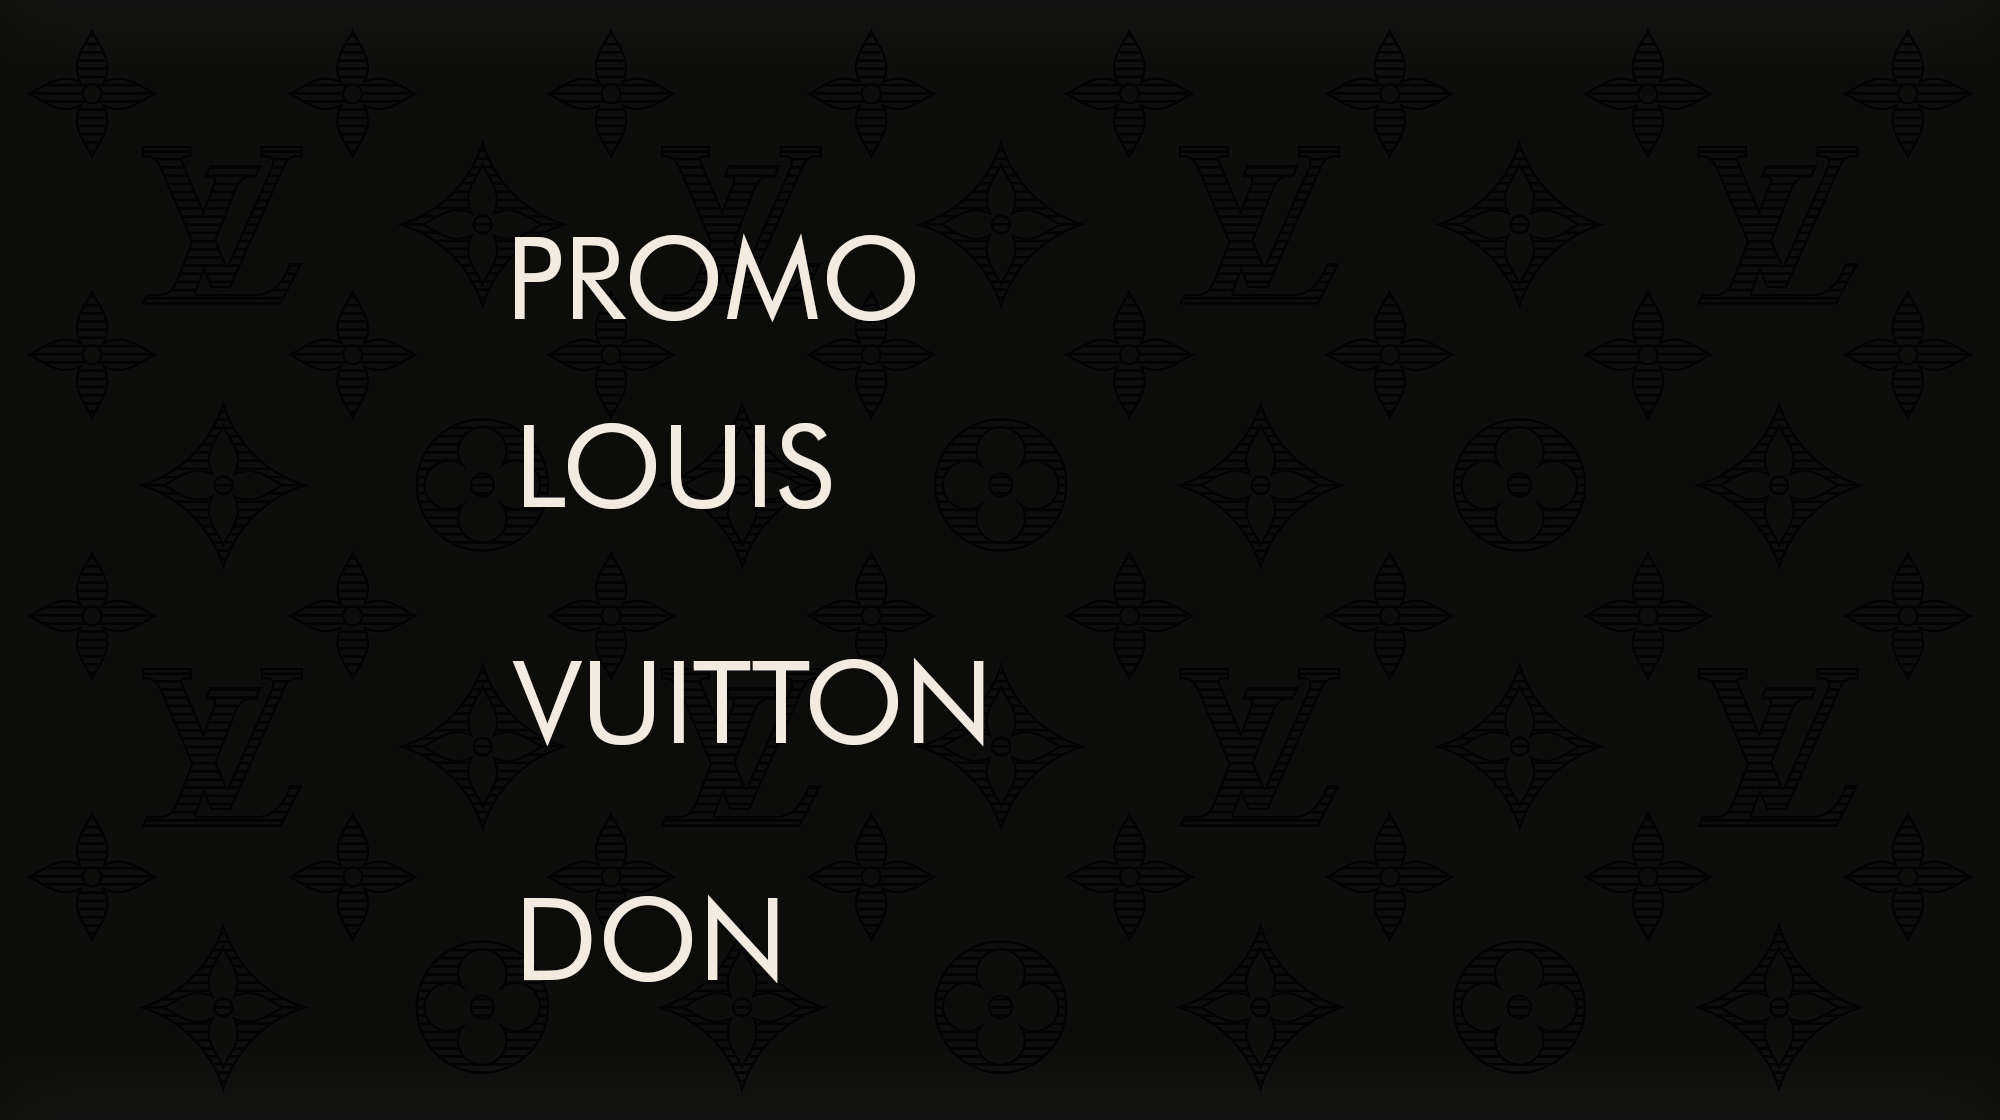 Mixtape Promo YouTube Upload to Louis Vuitton Don 40K+ subs channel